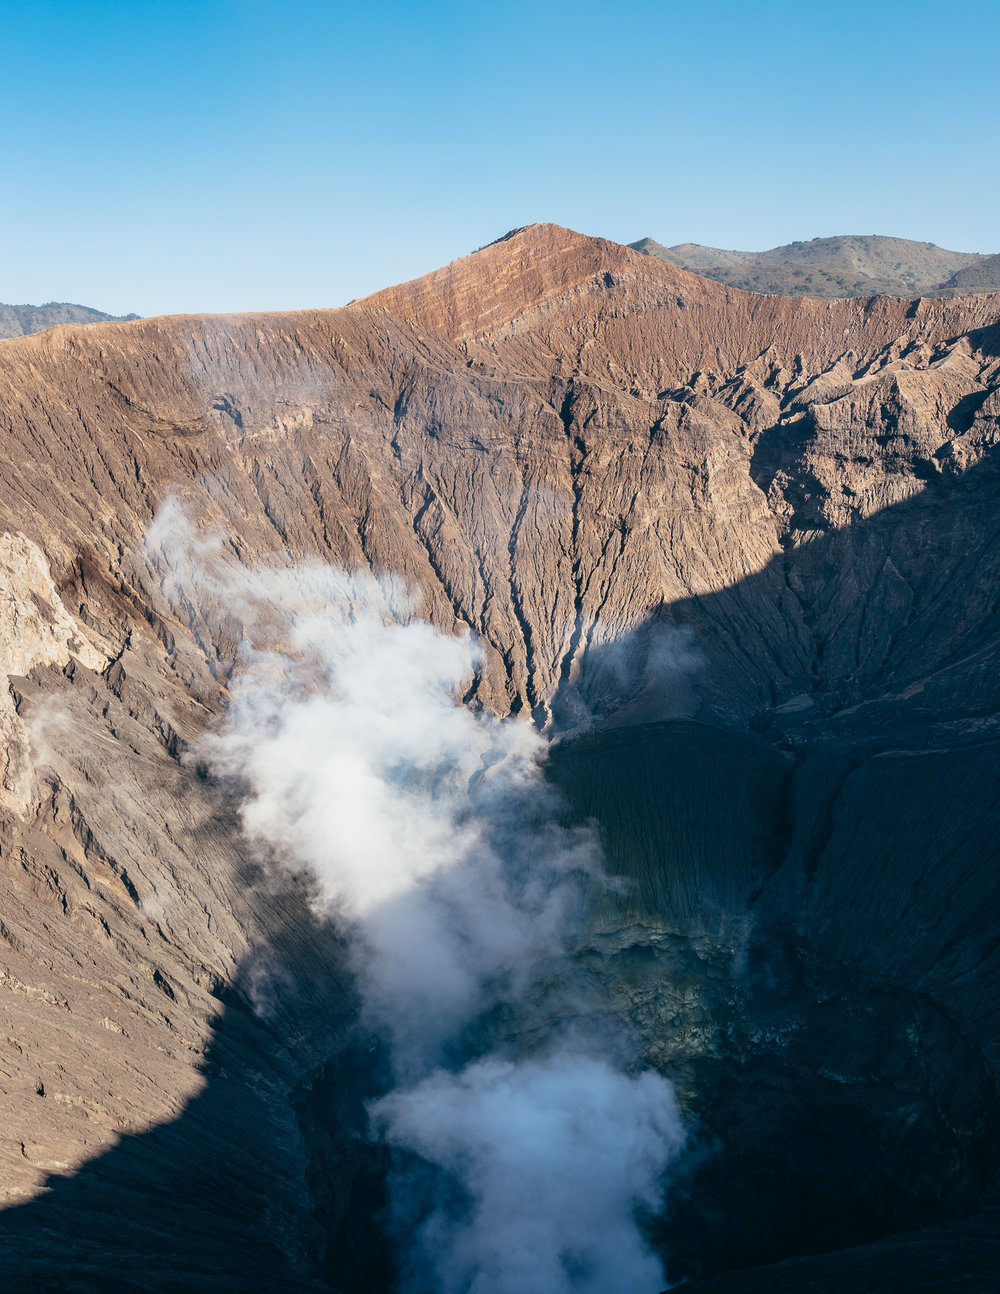 Smoke coming out of the crater.